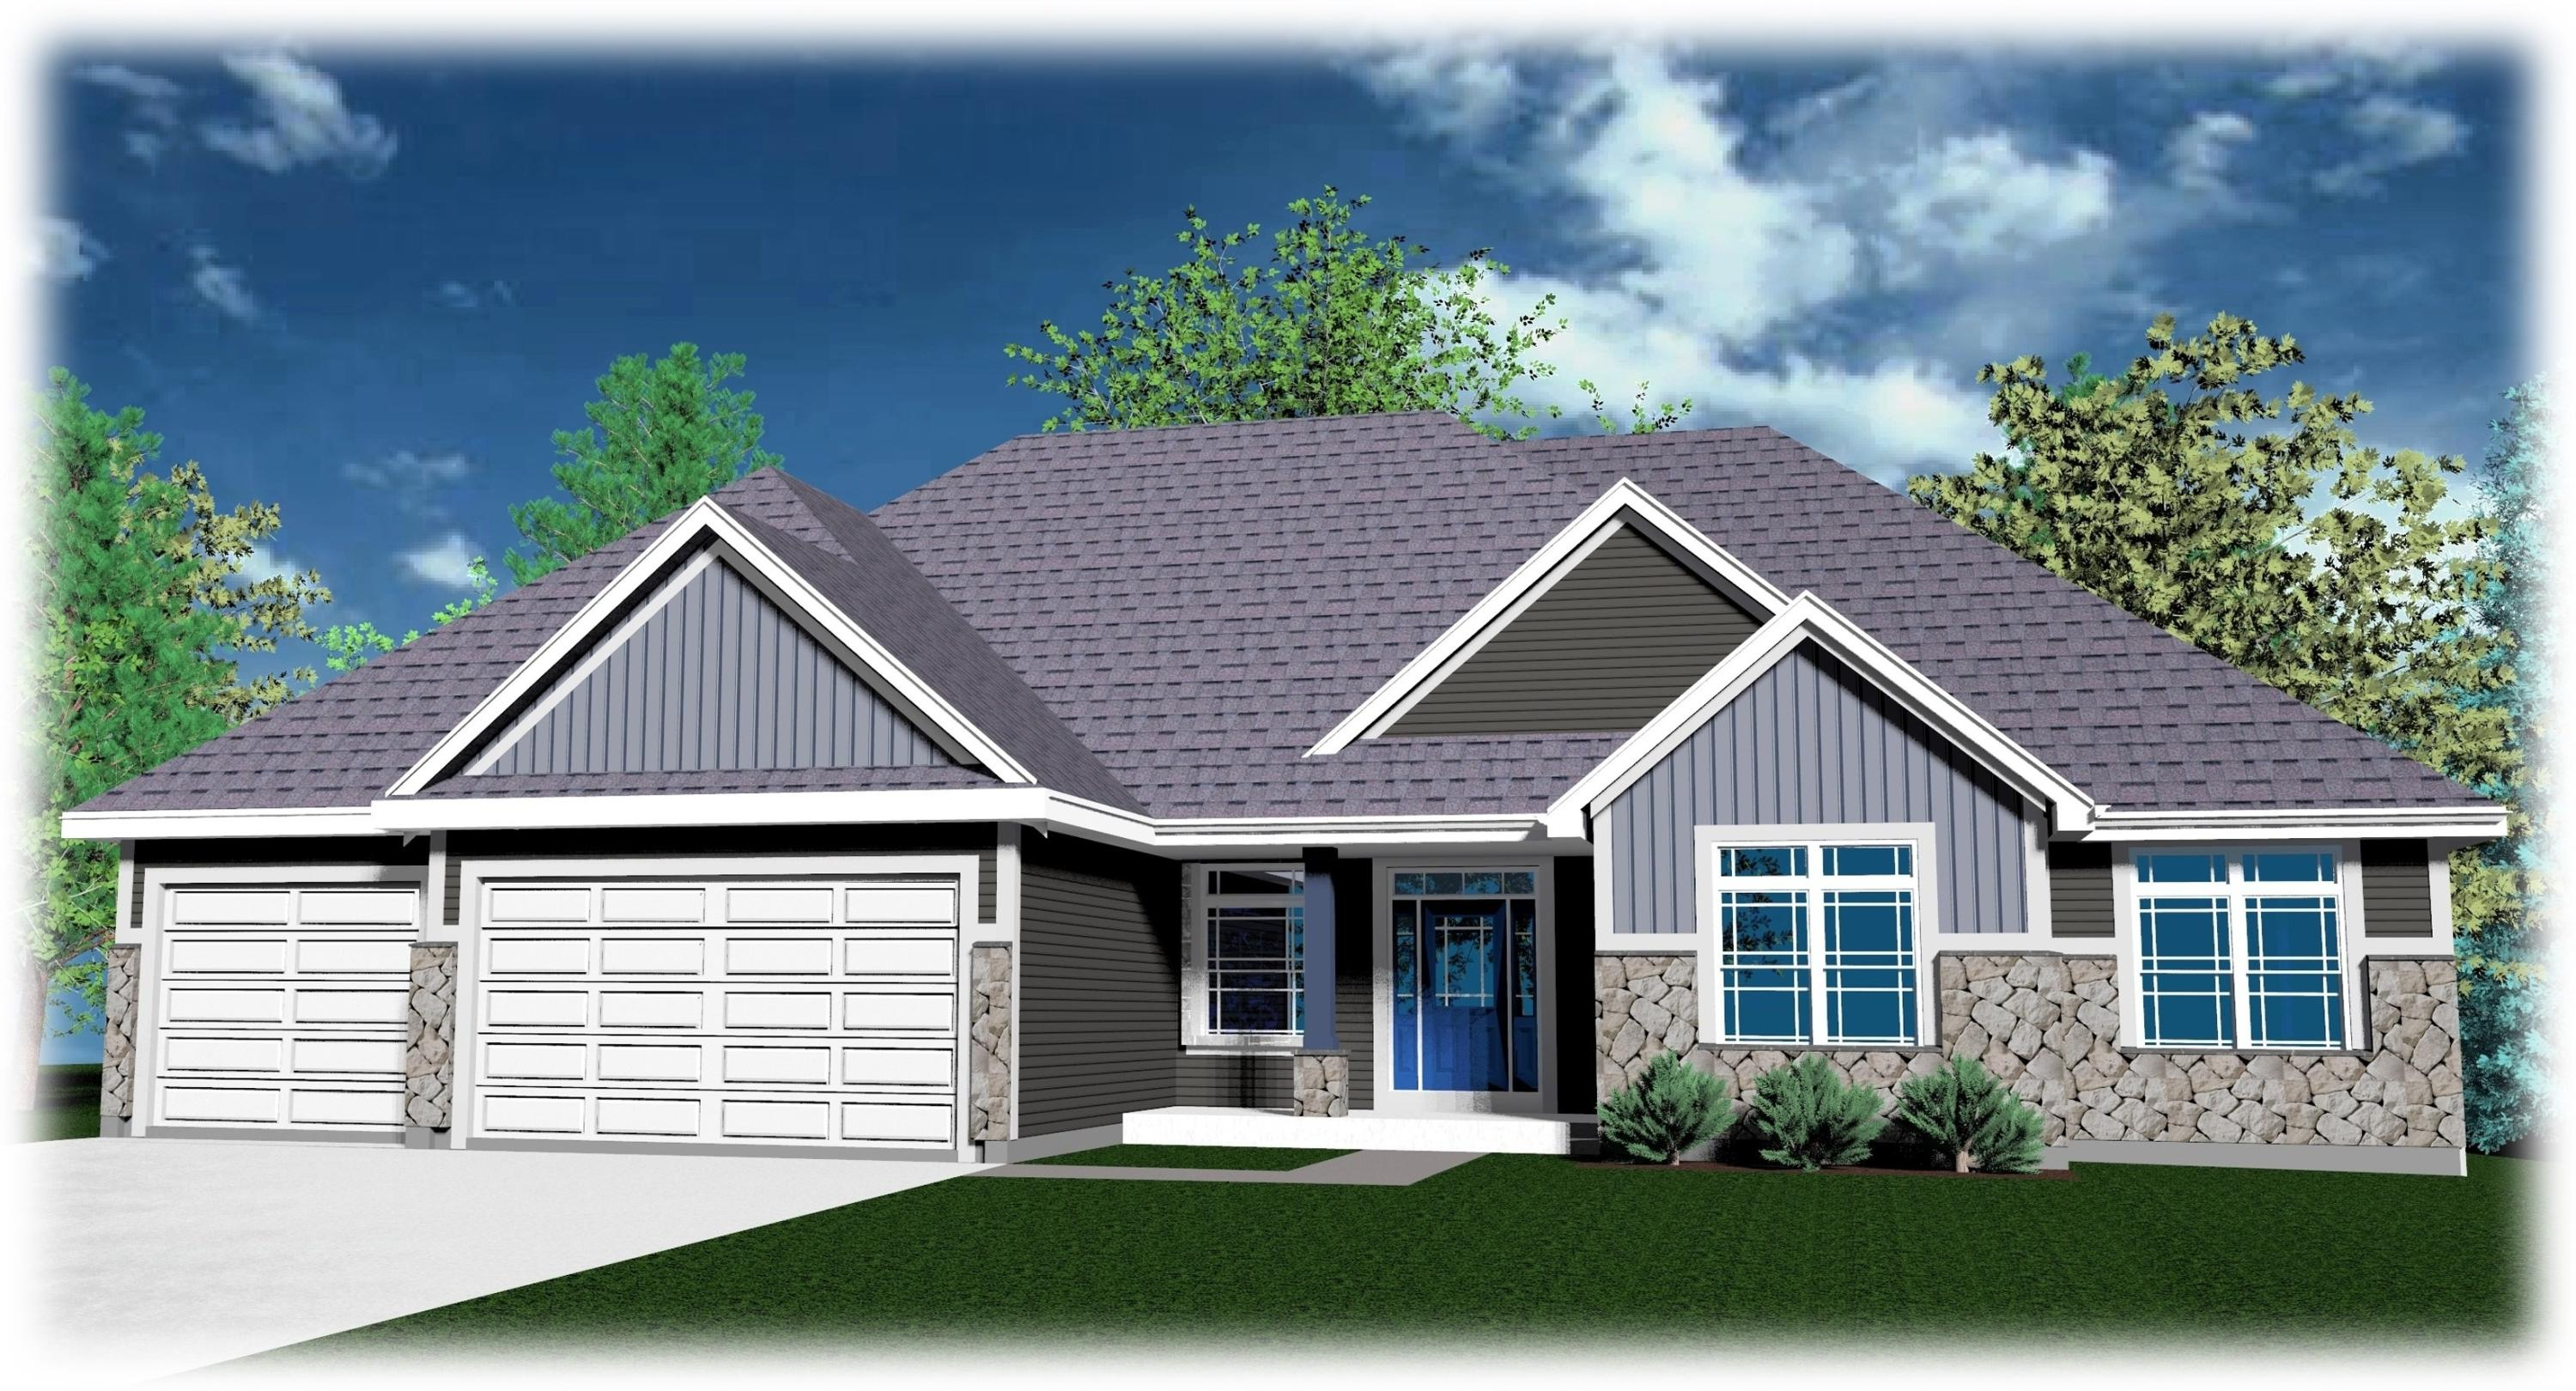 W223N4575 Boxleaf Ln, Pewaukee, Wisconsin 53202, 3 Bedrooms Bedrooms, ,2 BathroomsBathrooms,Single-Family,For Sale,Boxleaf Ln,1722944